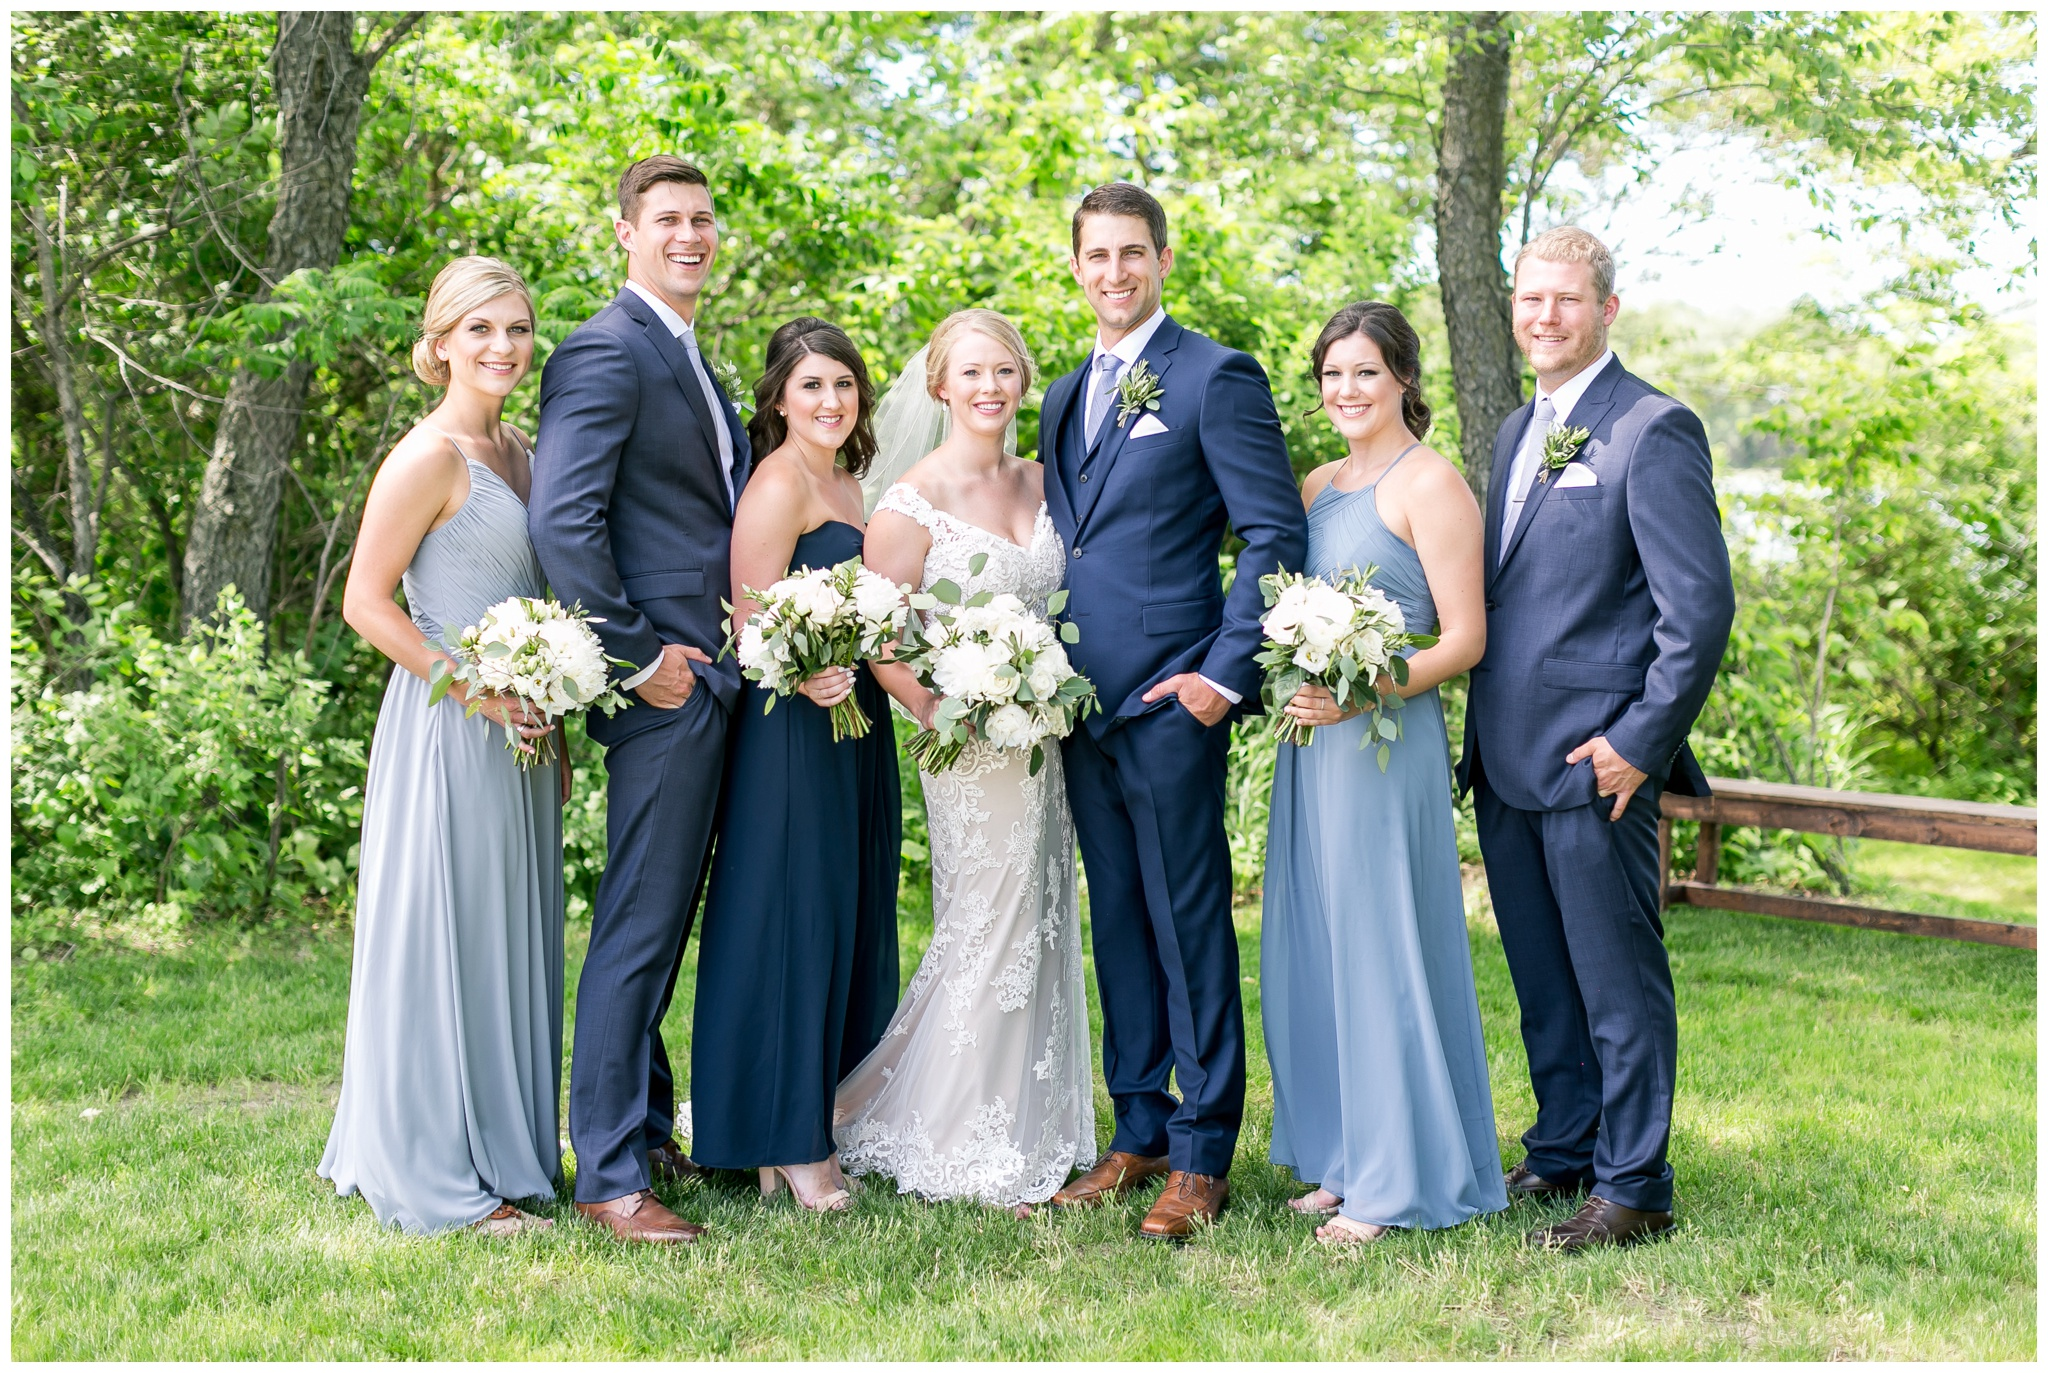 private_estate_wedding_stoughton_wisconsin_wedding_caynay_photo_3850.jpg